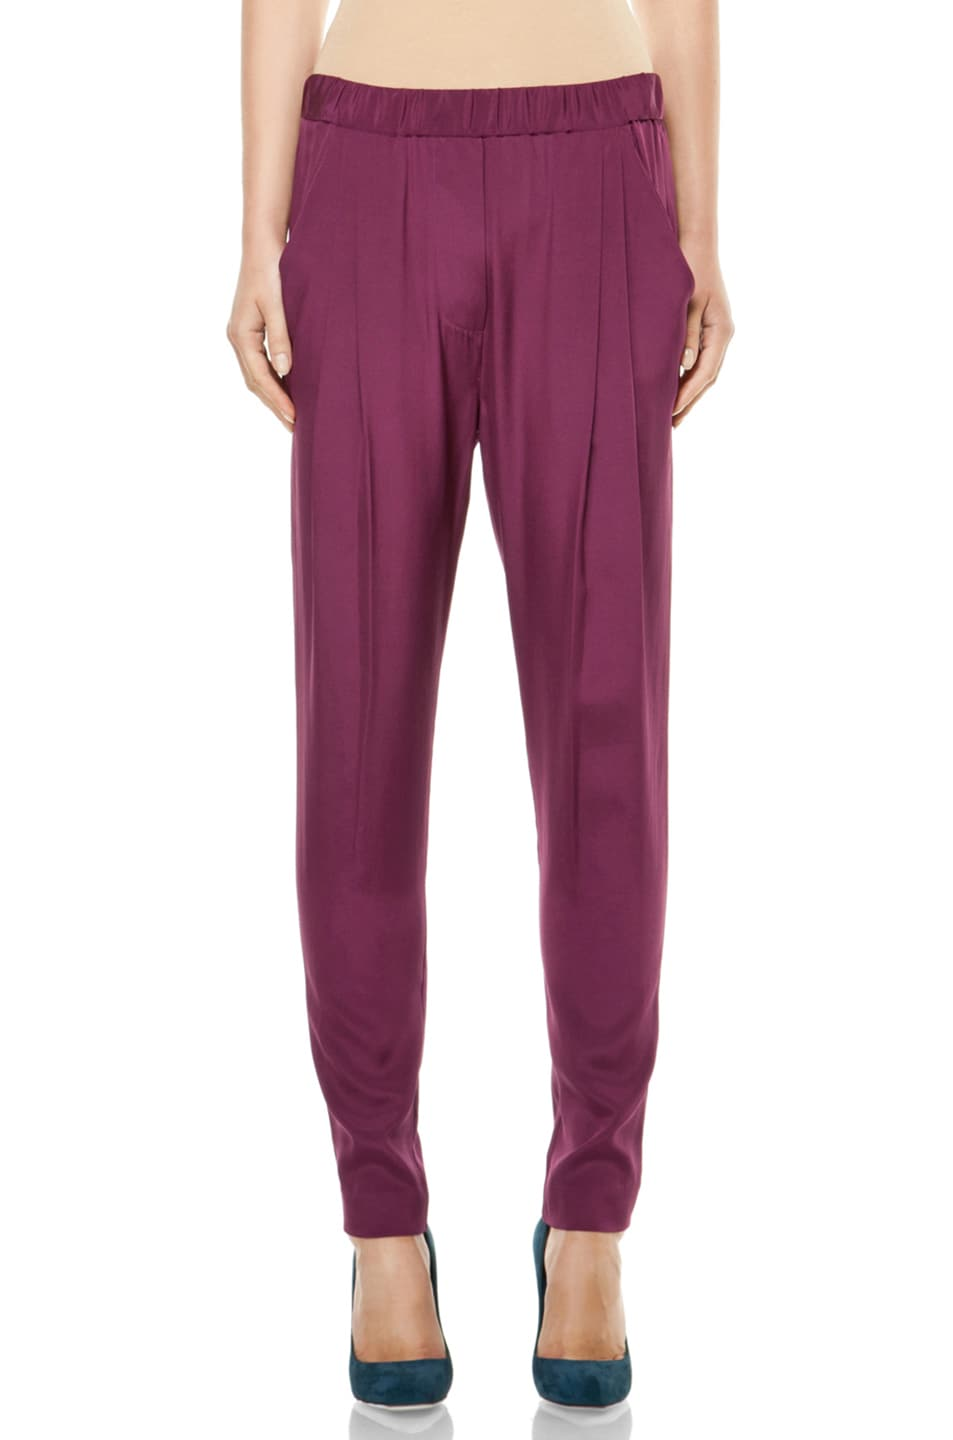 Image 1 of 3.1 phillip lim Draped Pocket Trouser in Berry